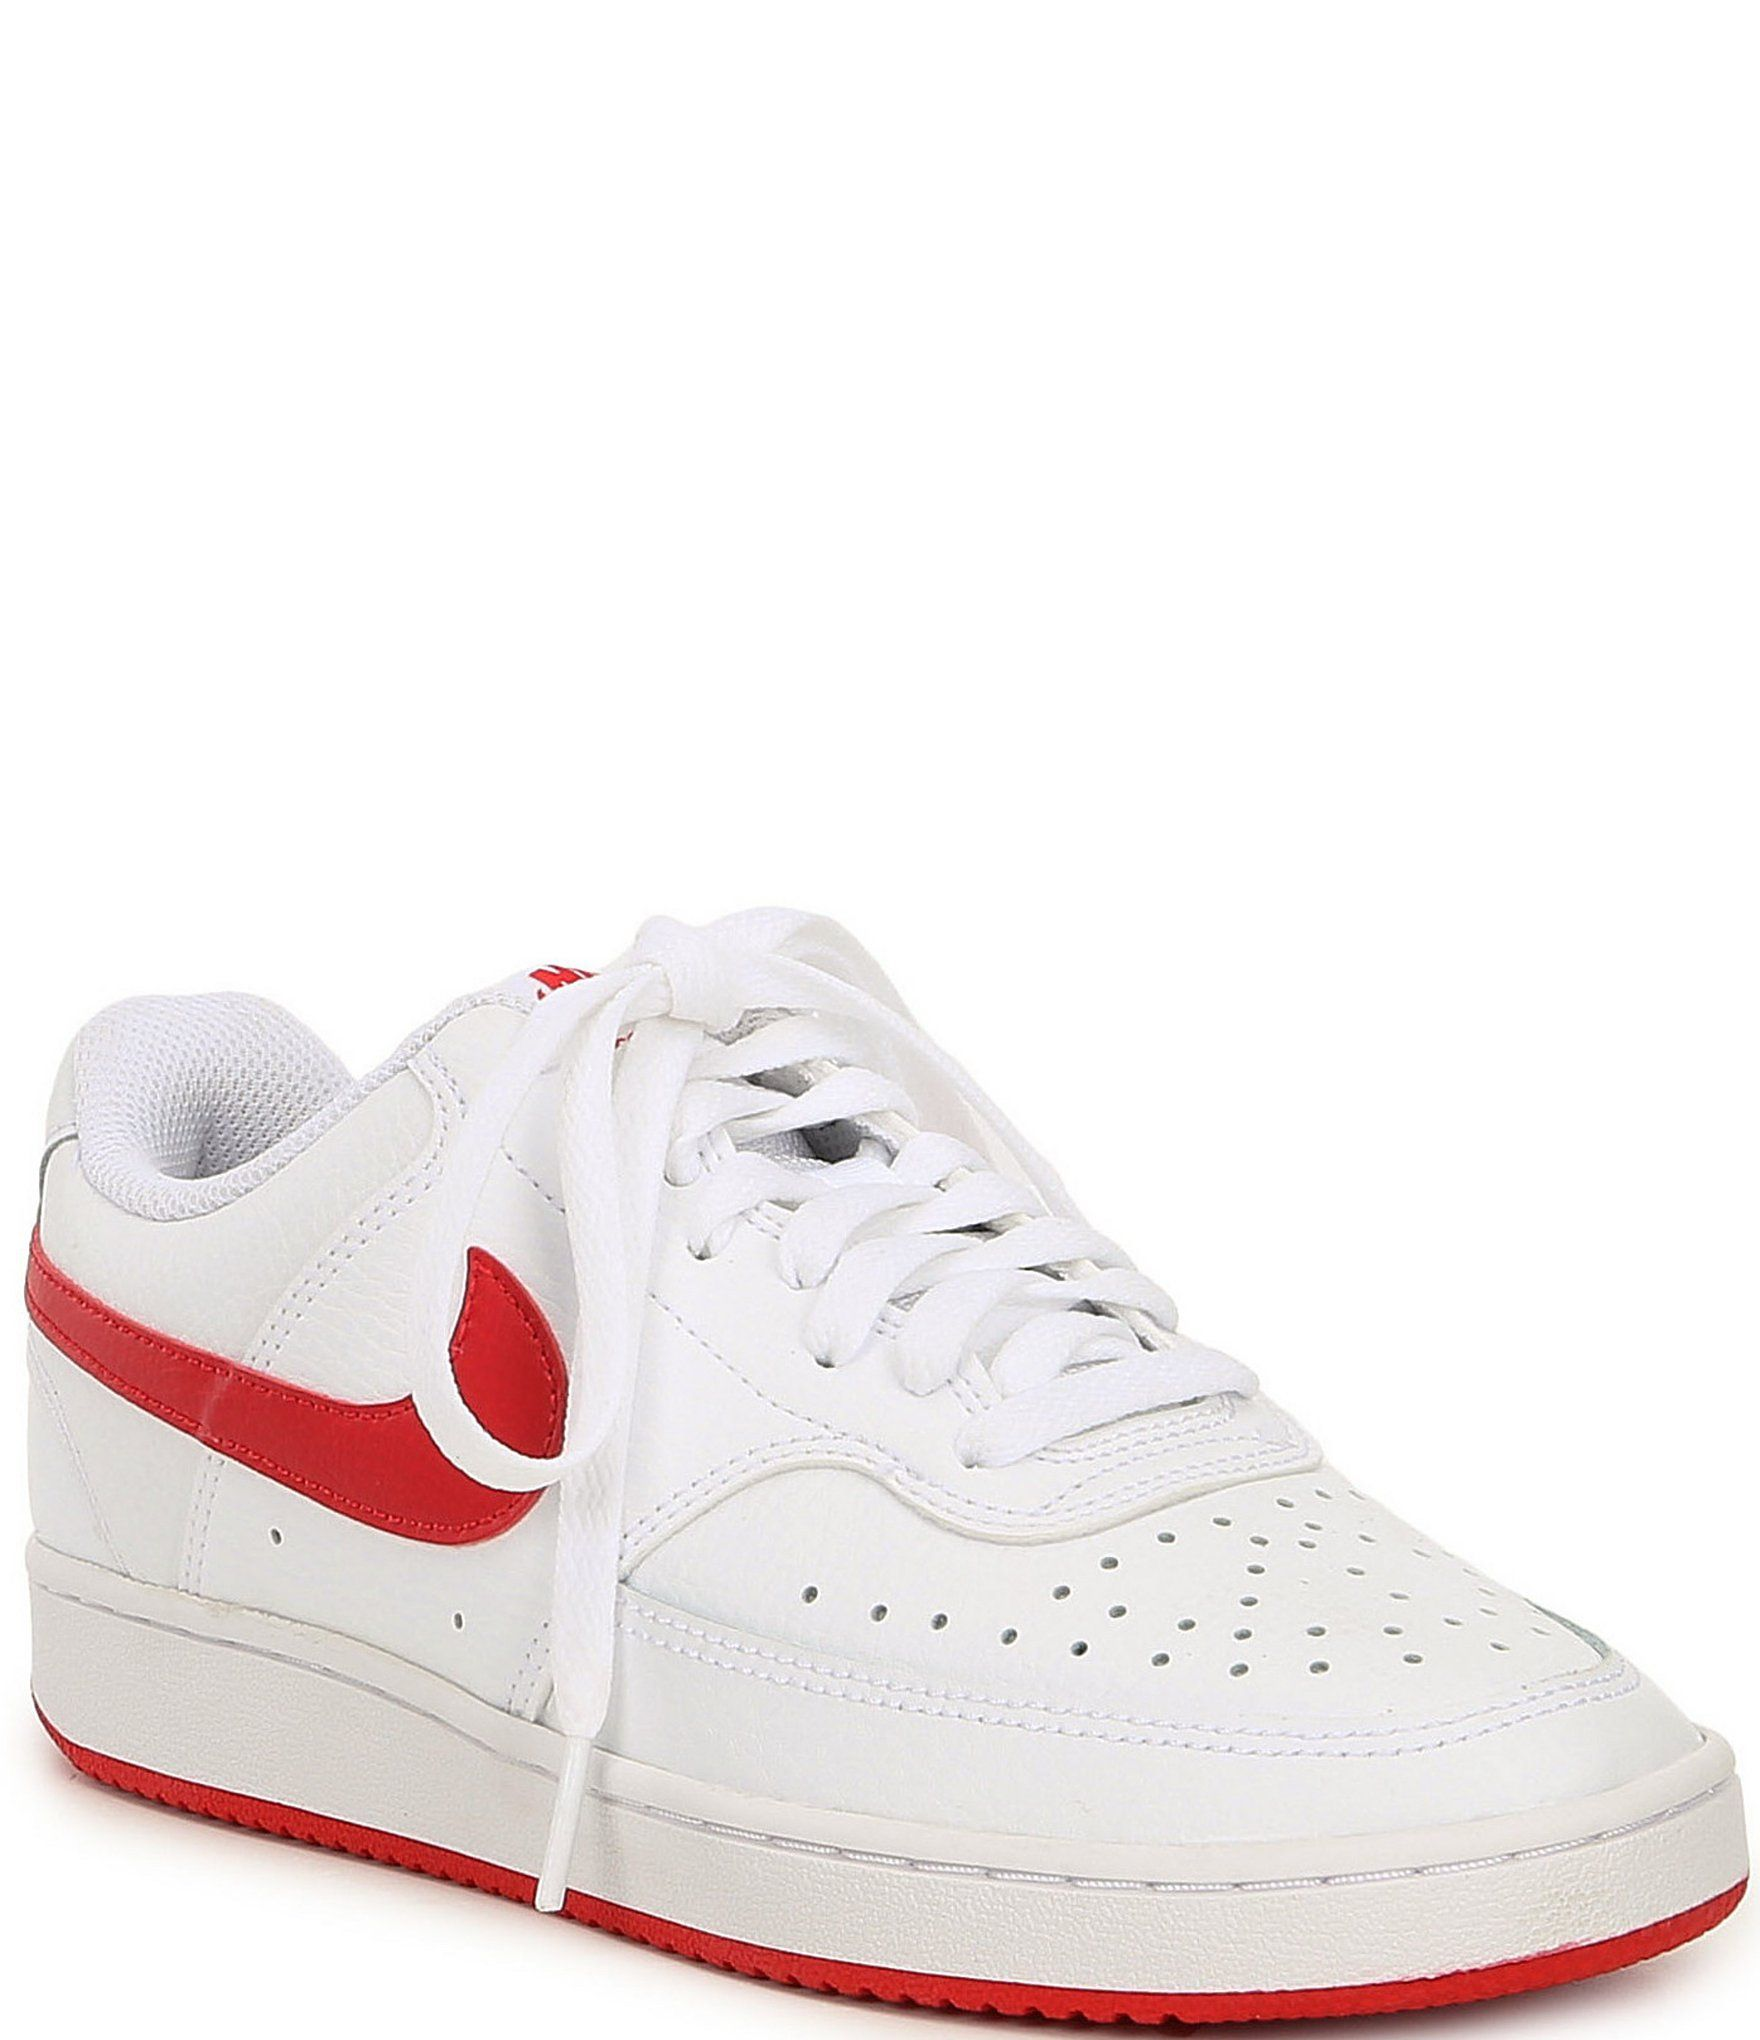 Nike Women's Court Vision Low Lifestyle Shoes WhiteWhite